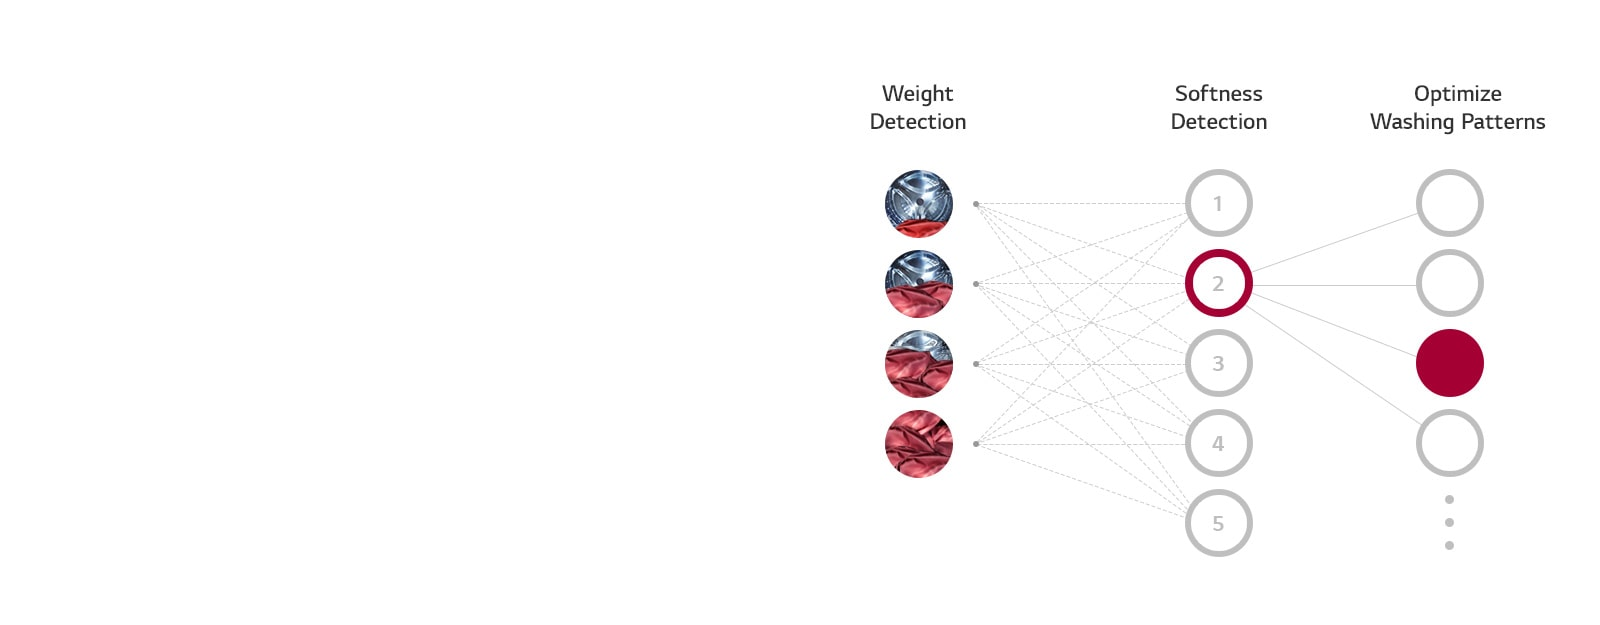 Three columns representing Weight Detection, Softness Detection, and Optimize Washing Patterns with levels beneath show how the AI DD of the washing machine chooses the optimal wash setting.